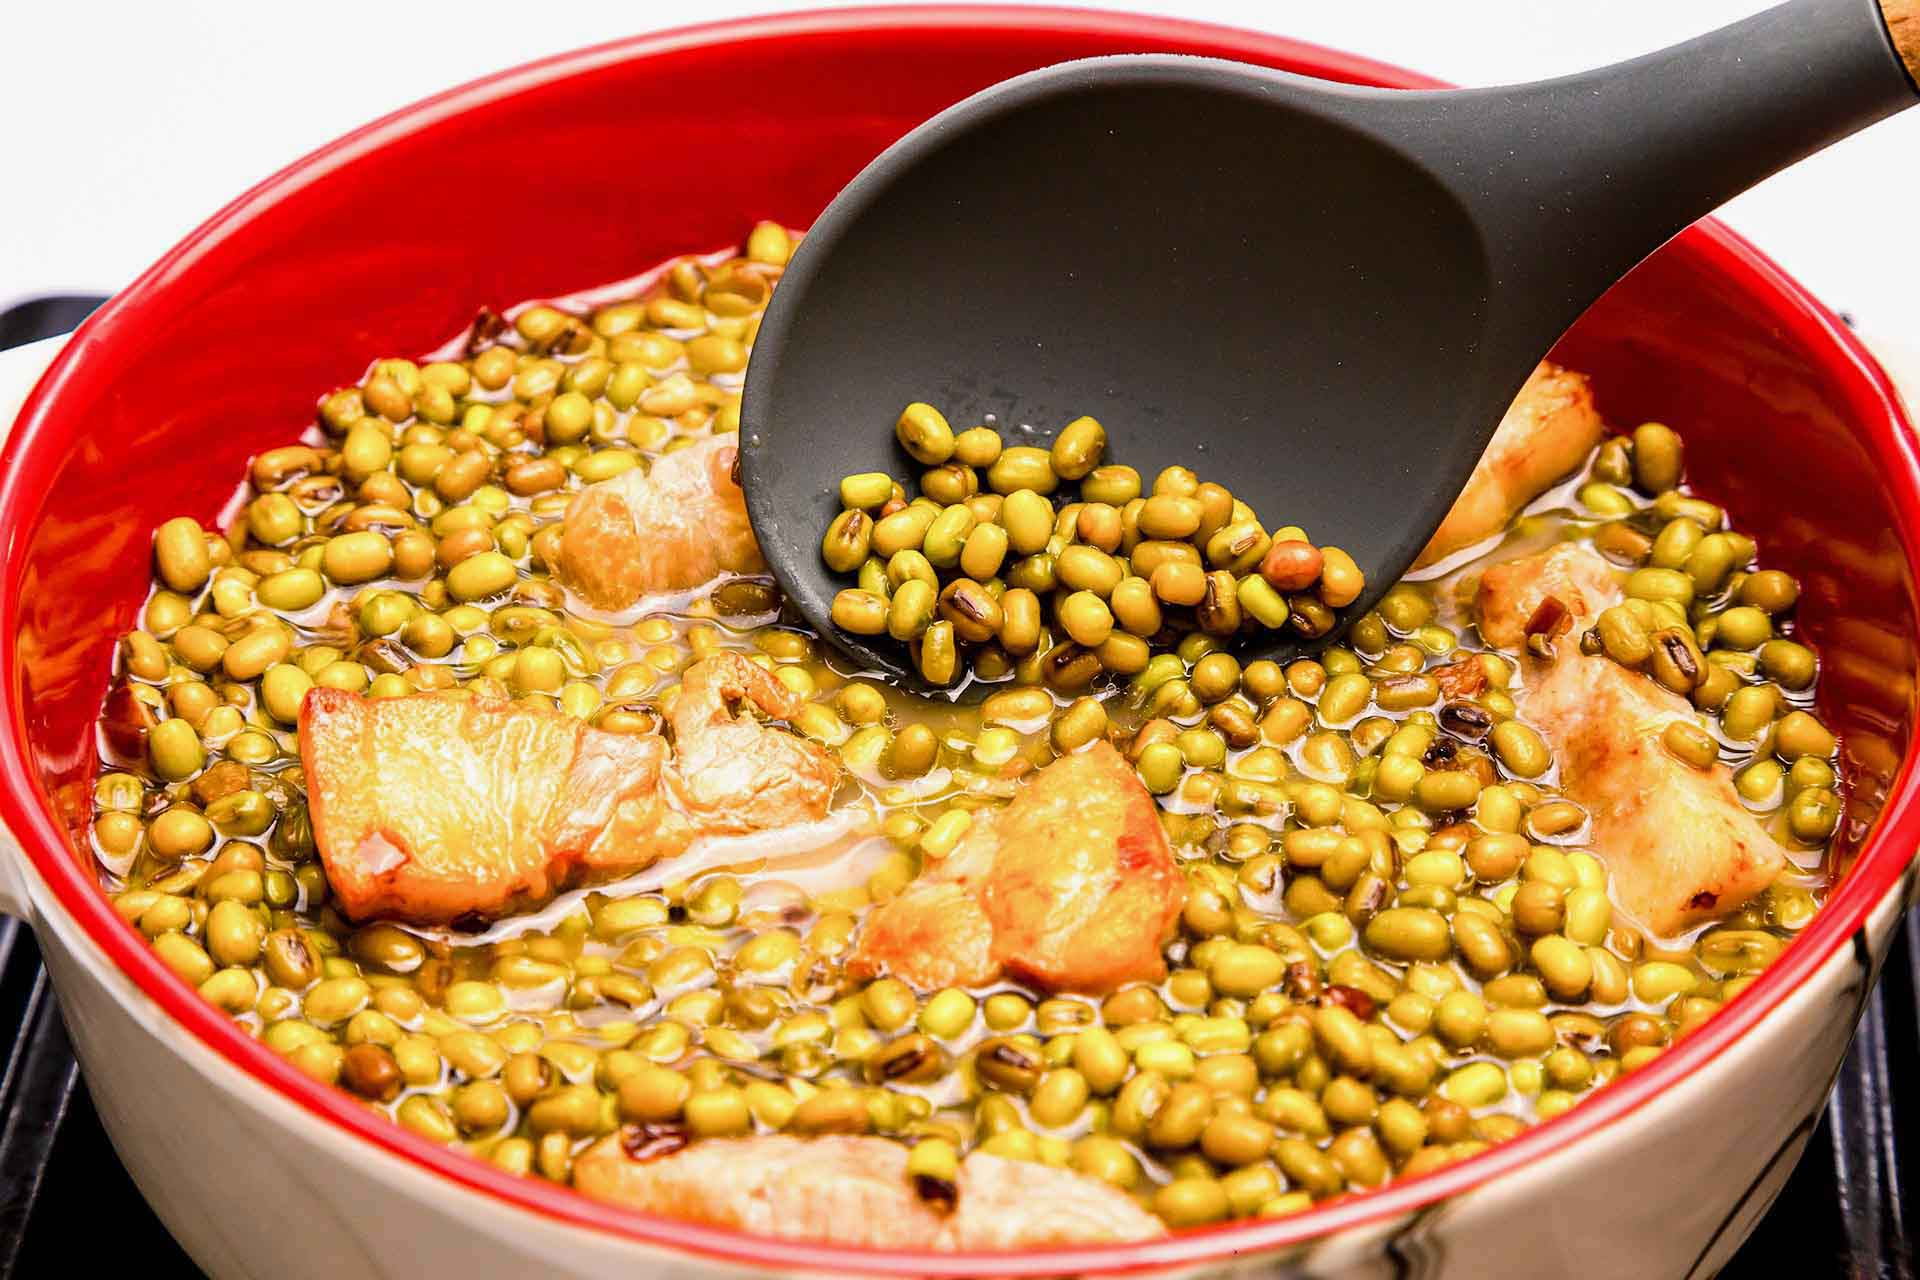 Cook the Mung Beans